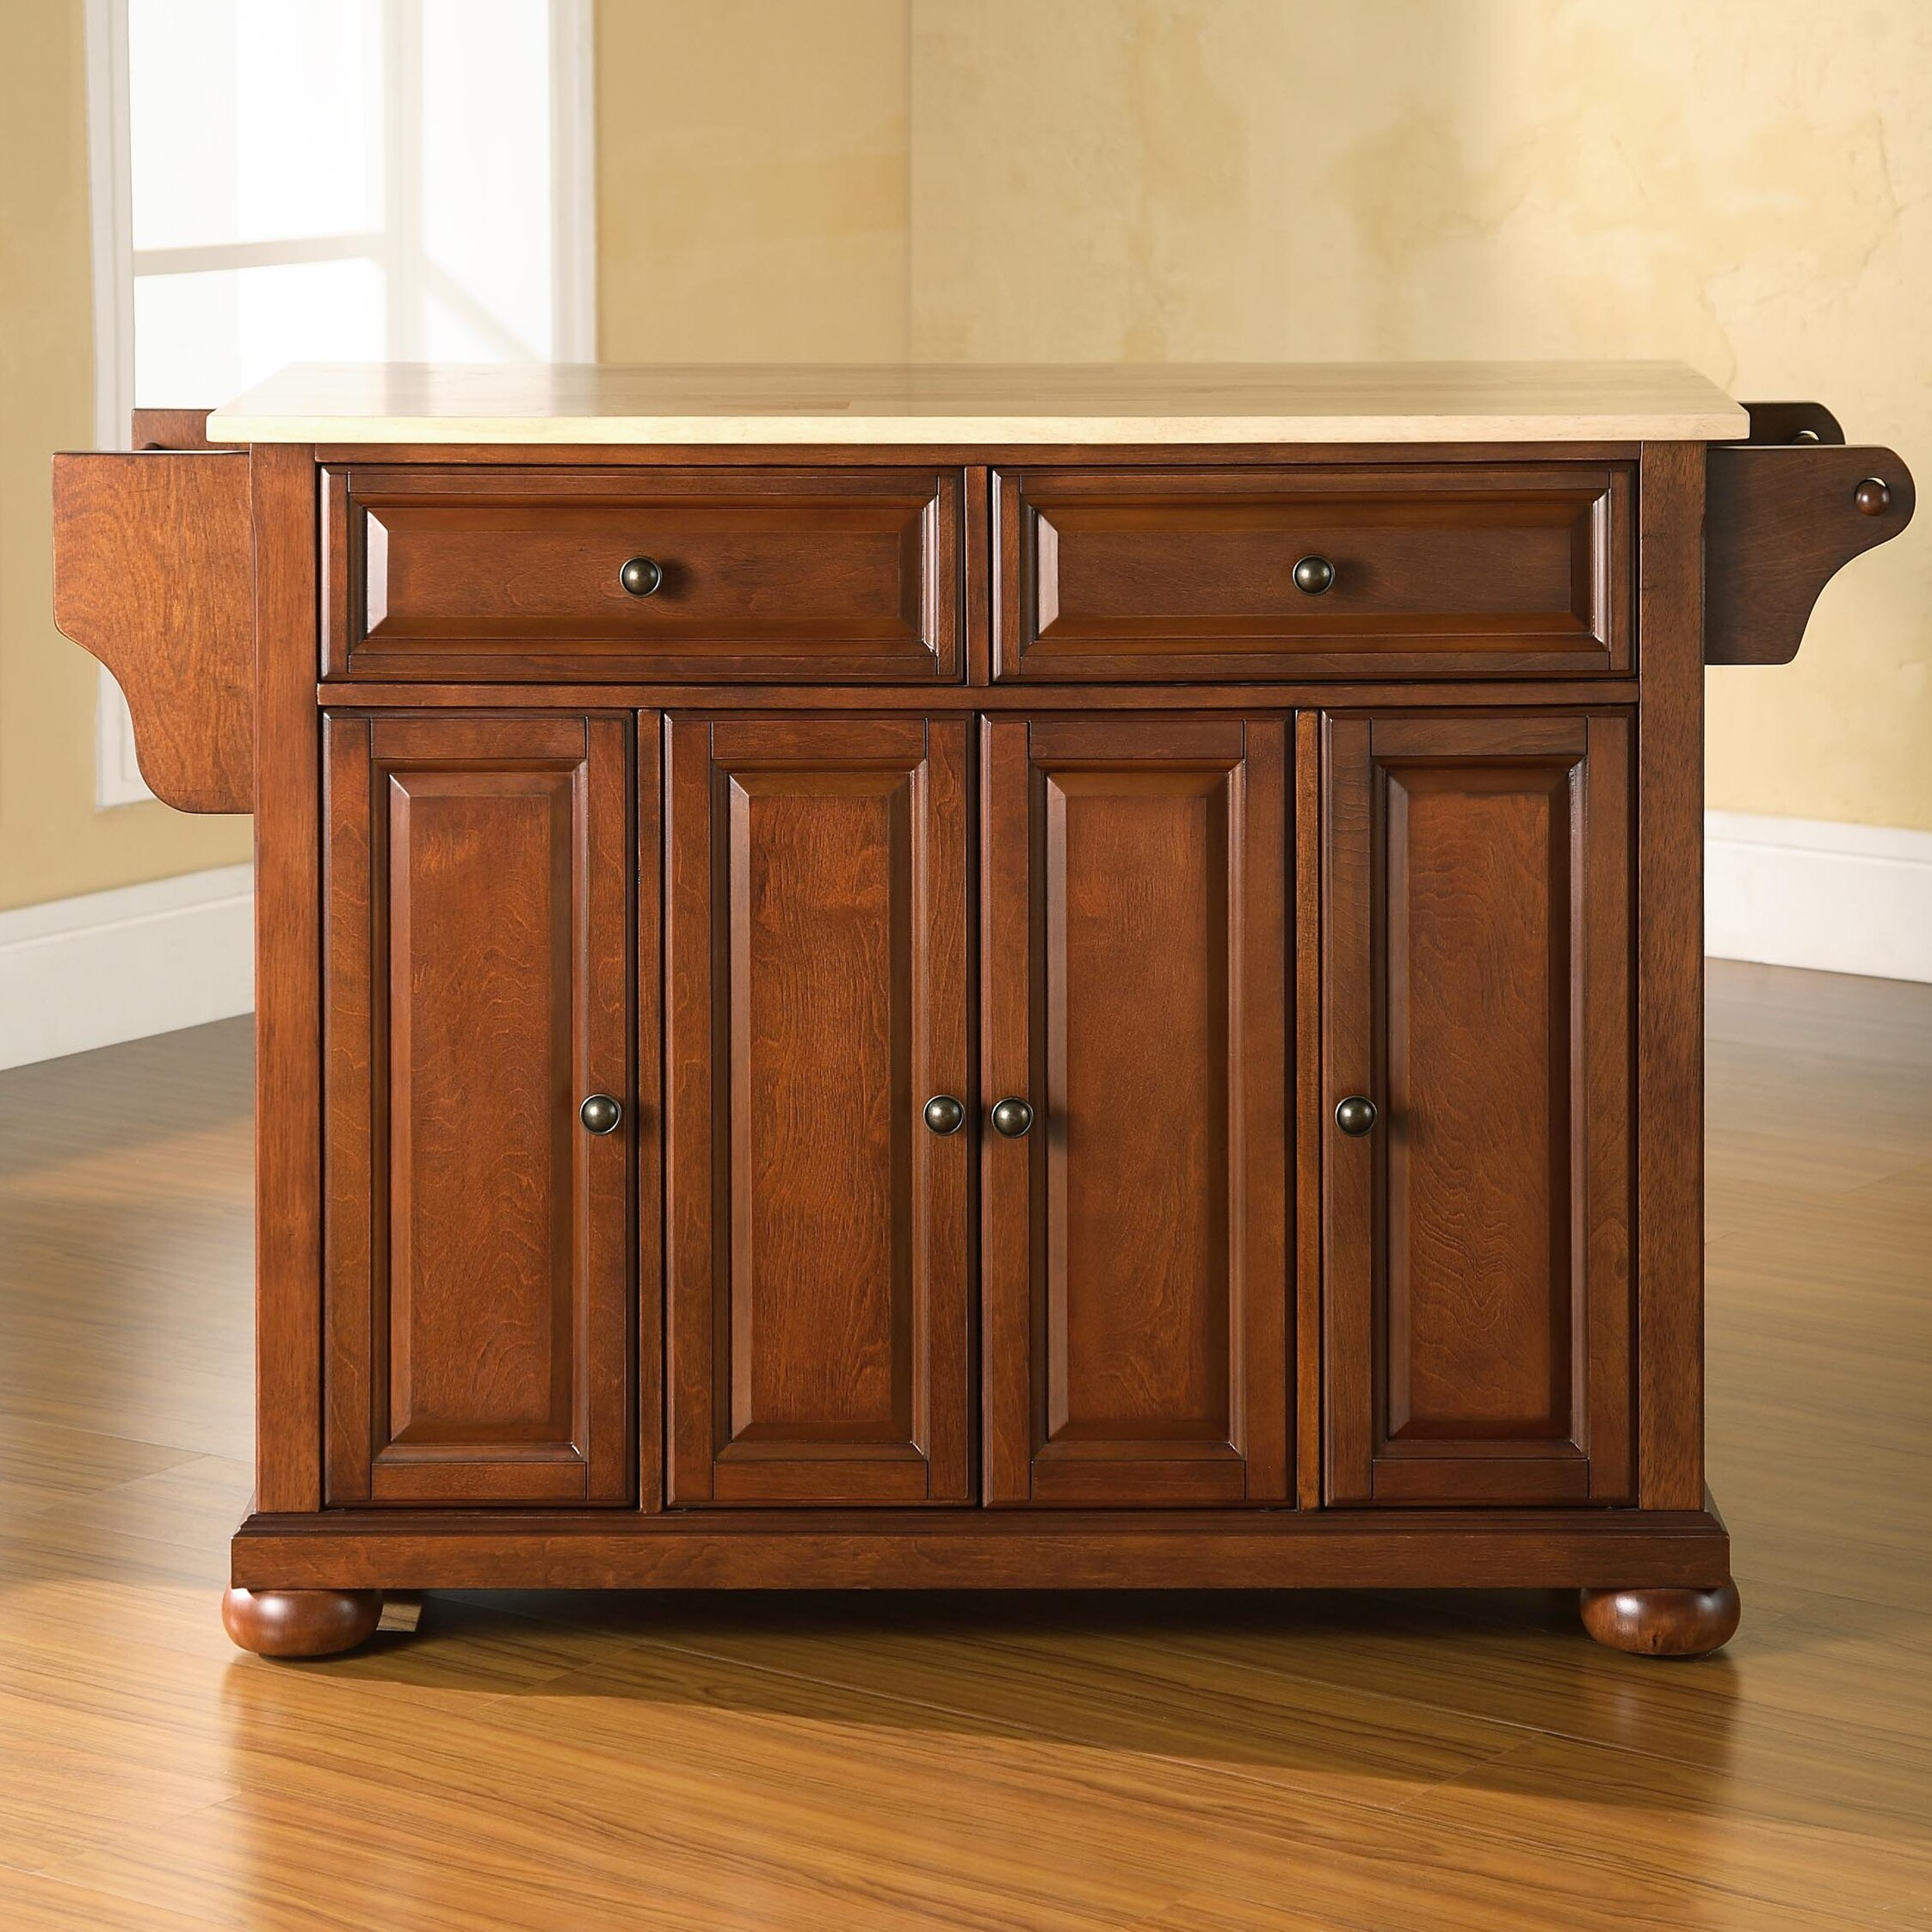 Kitchen Wood Top: Darby Home Co Pottstown Kitchen Island With Wood Top